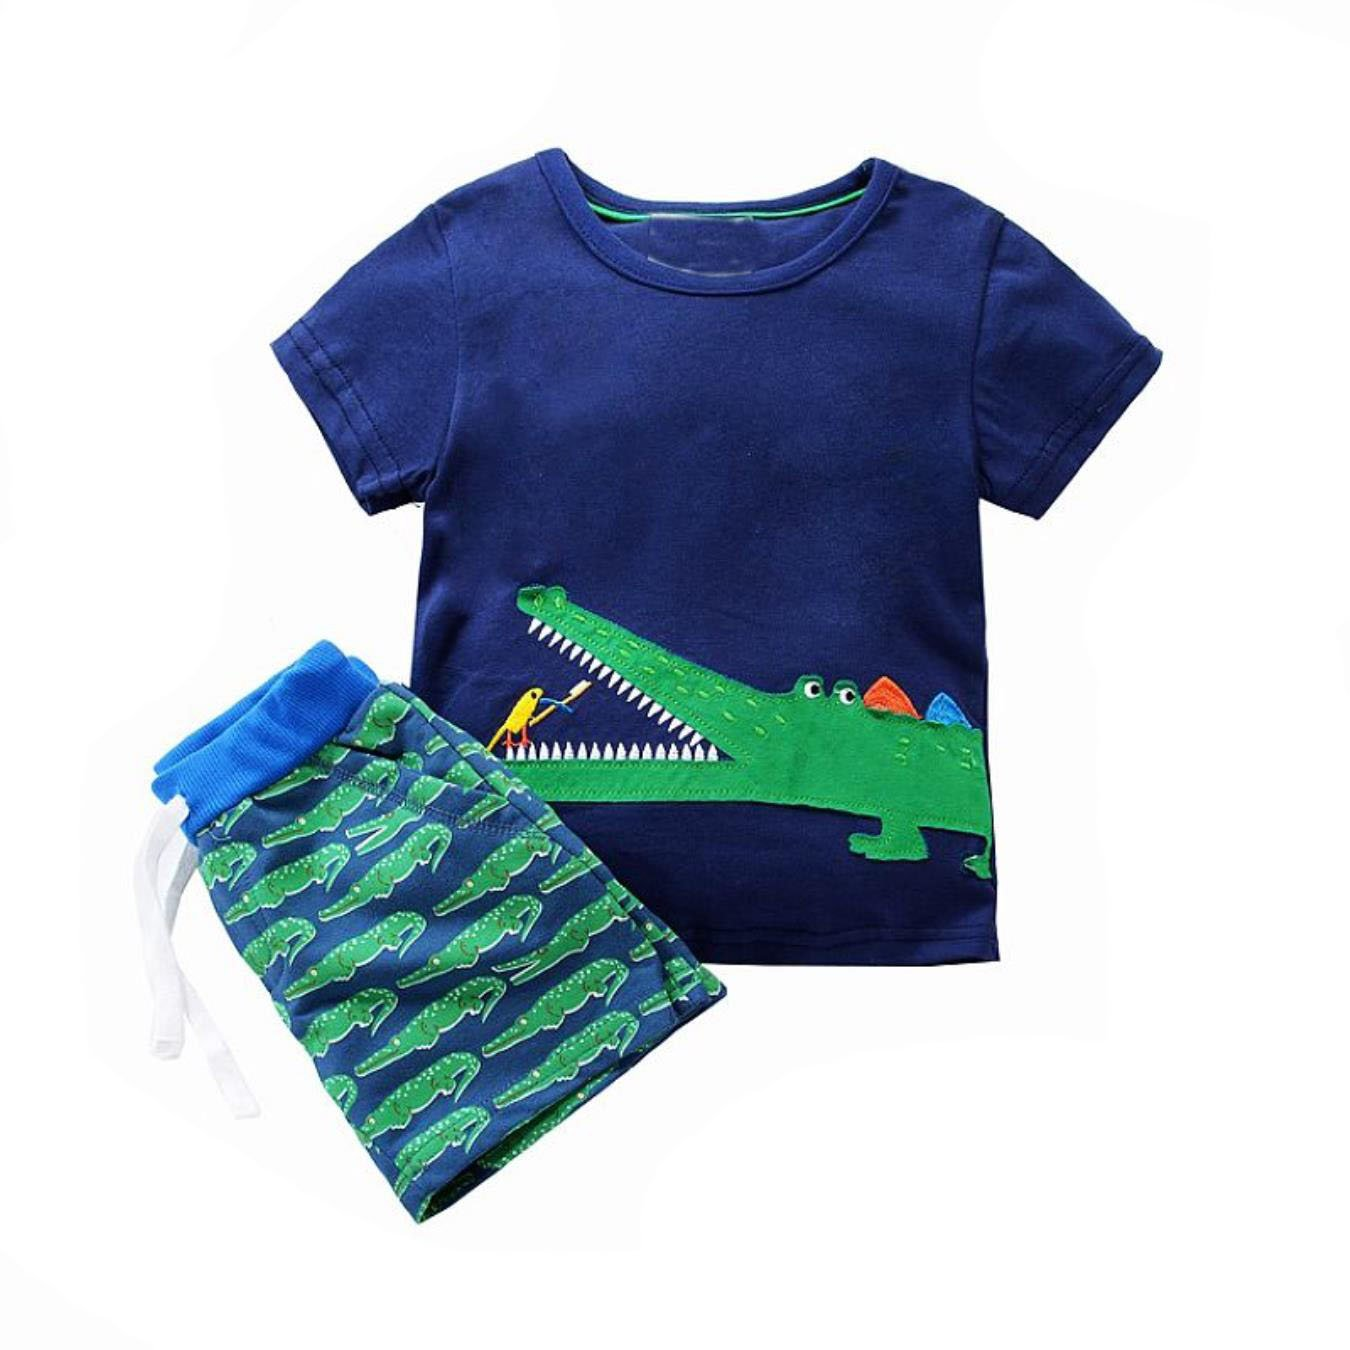 ef9d12897140 Amazon.com: Summer Baby Boy Clothes Animal Applique Sport Suits Boys  Clothing: Clothing